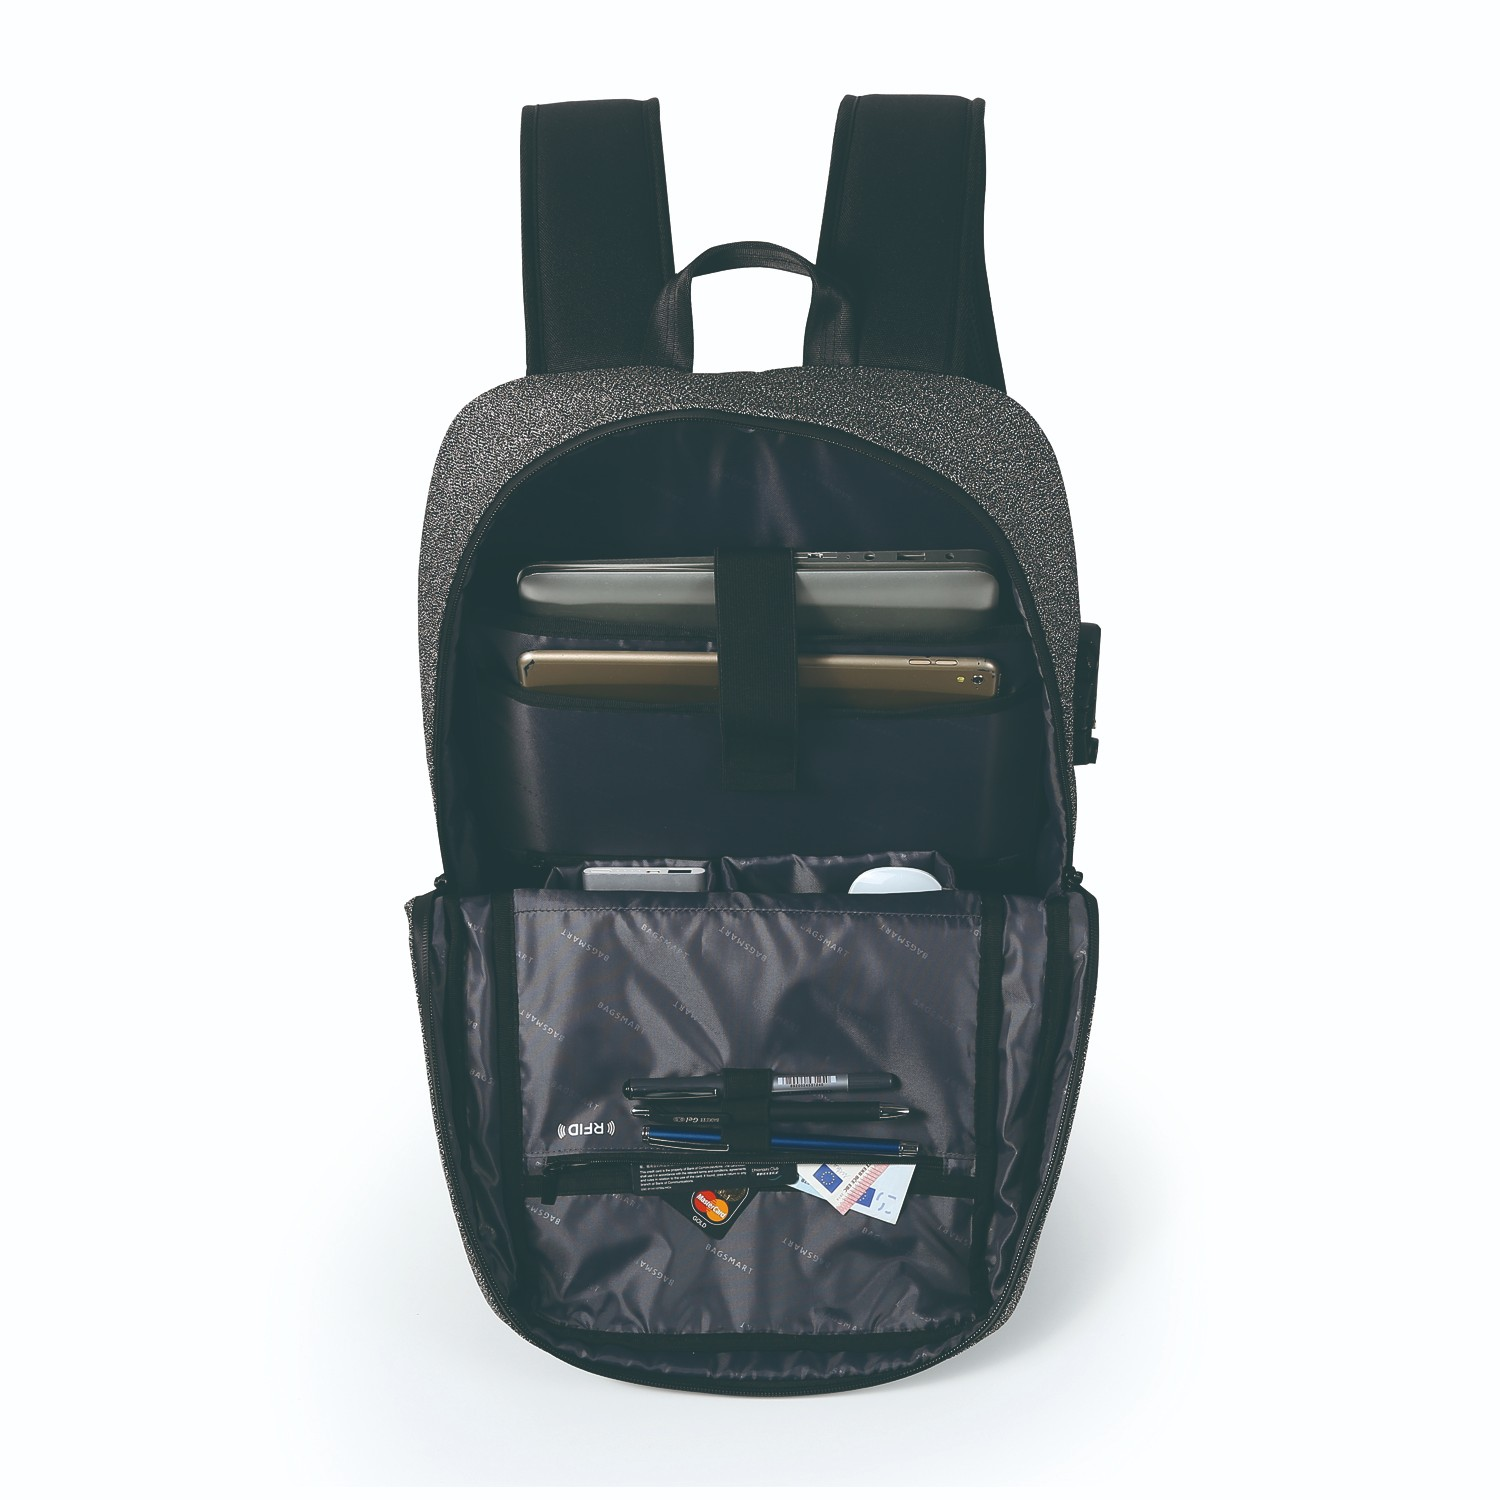 Laptop Backpack Anti Theft Manufacturers, Laptop Backpack Anti Theft Factory, Supply Laptop Backpack Anti Theft